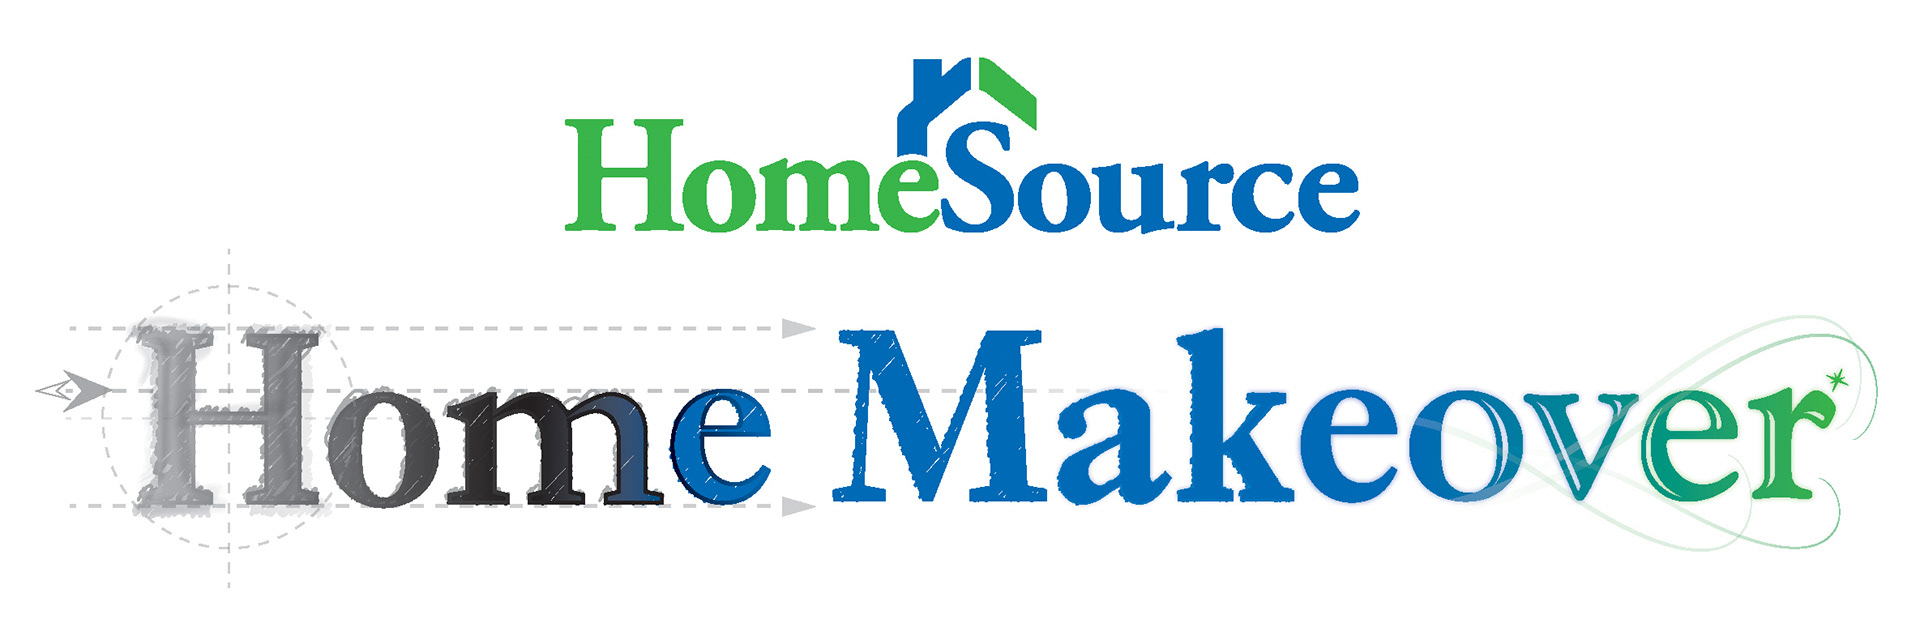 Michael Teal - Home Makeover Logo Design